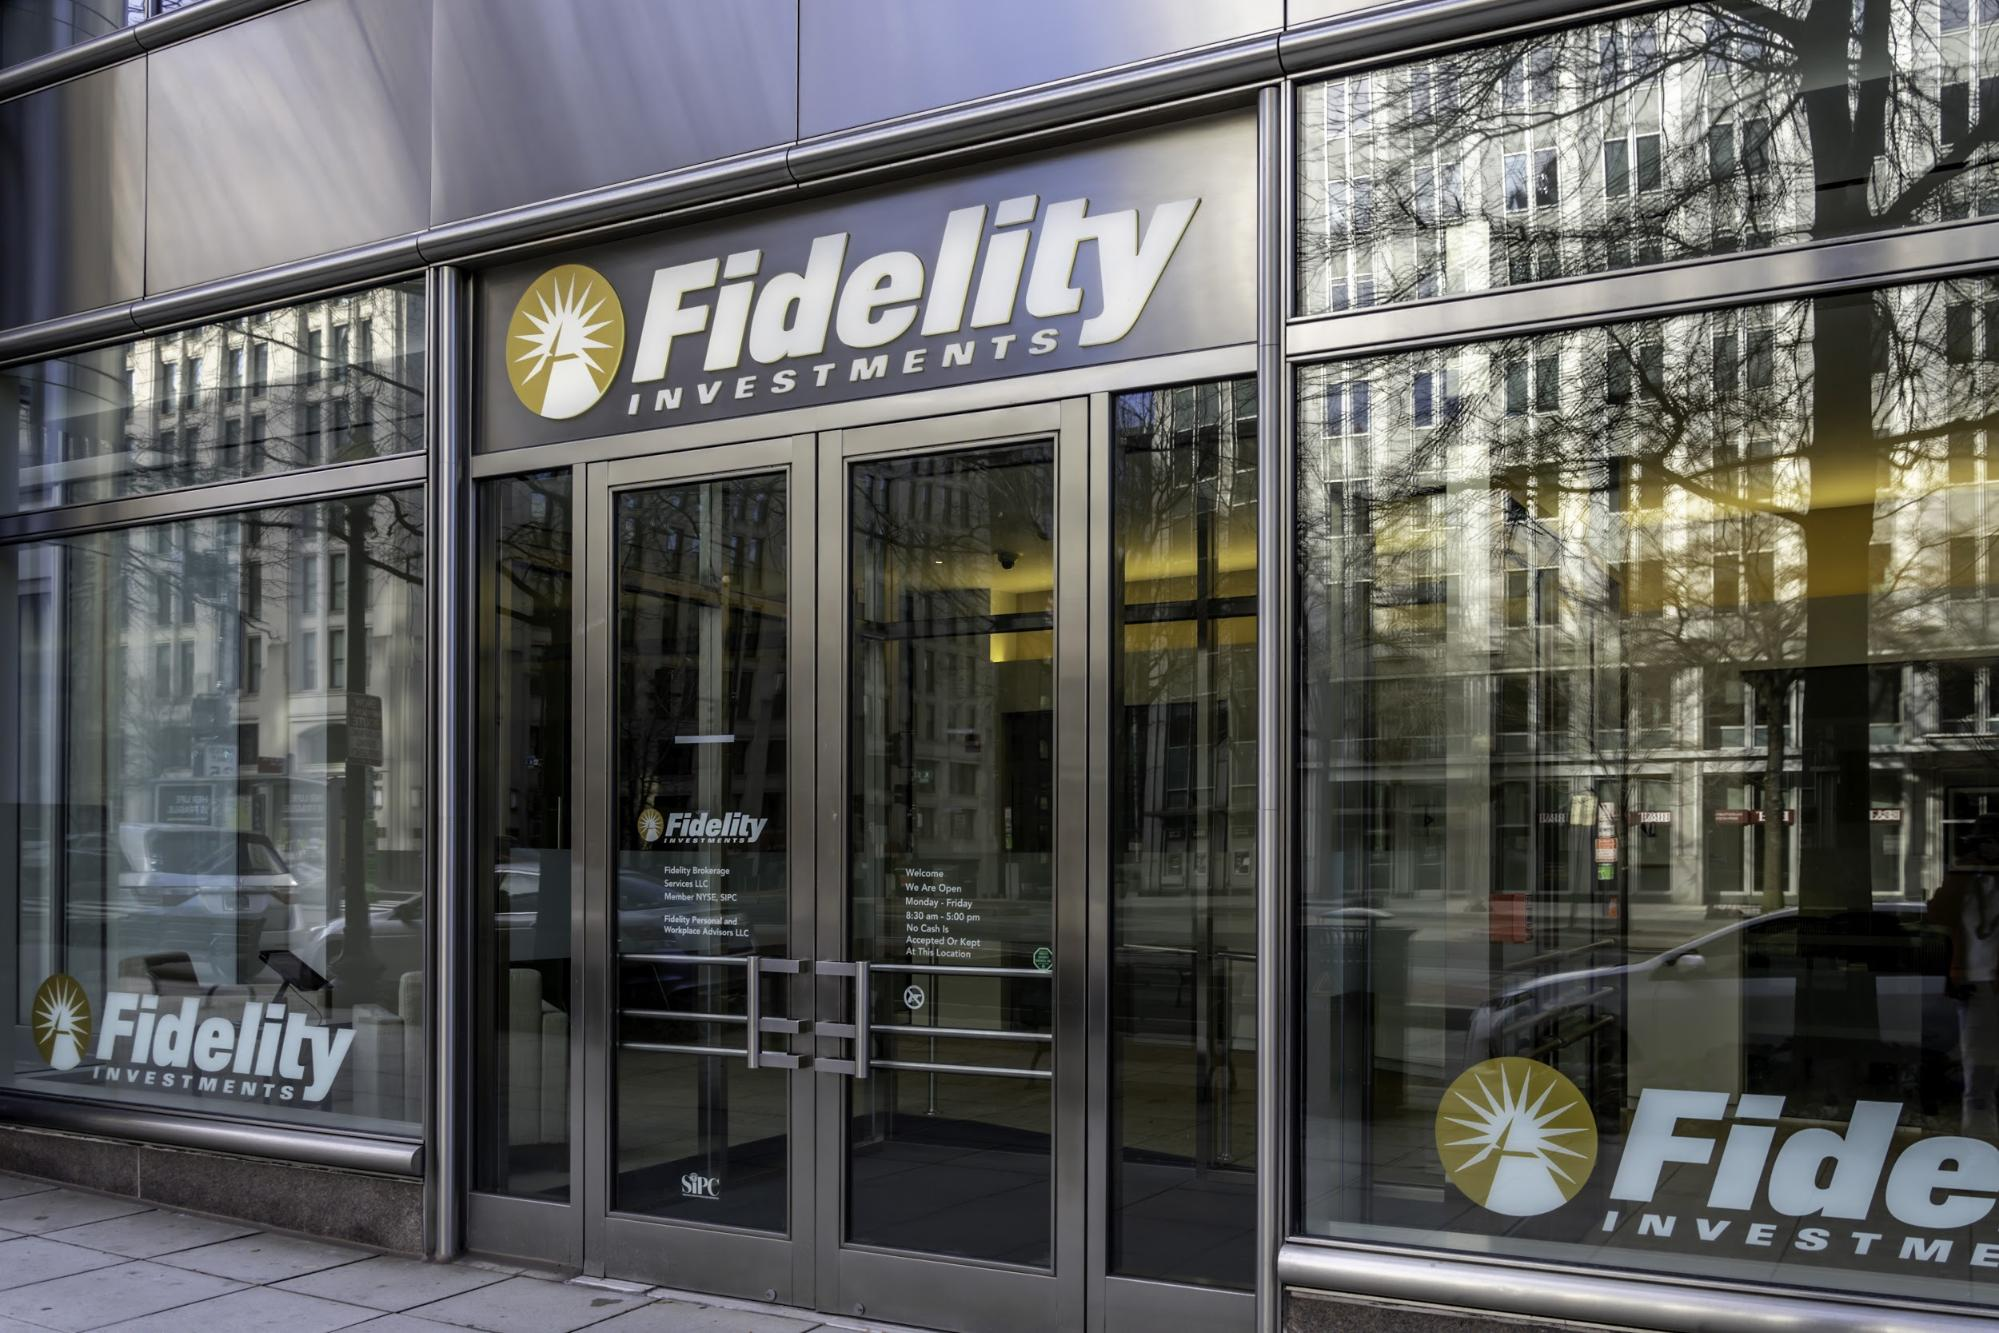 Fidelity internship: Entrance to the Fidelity Investments office